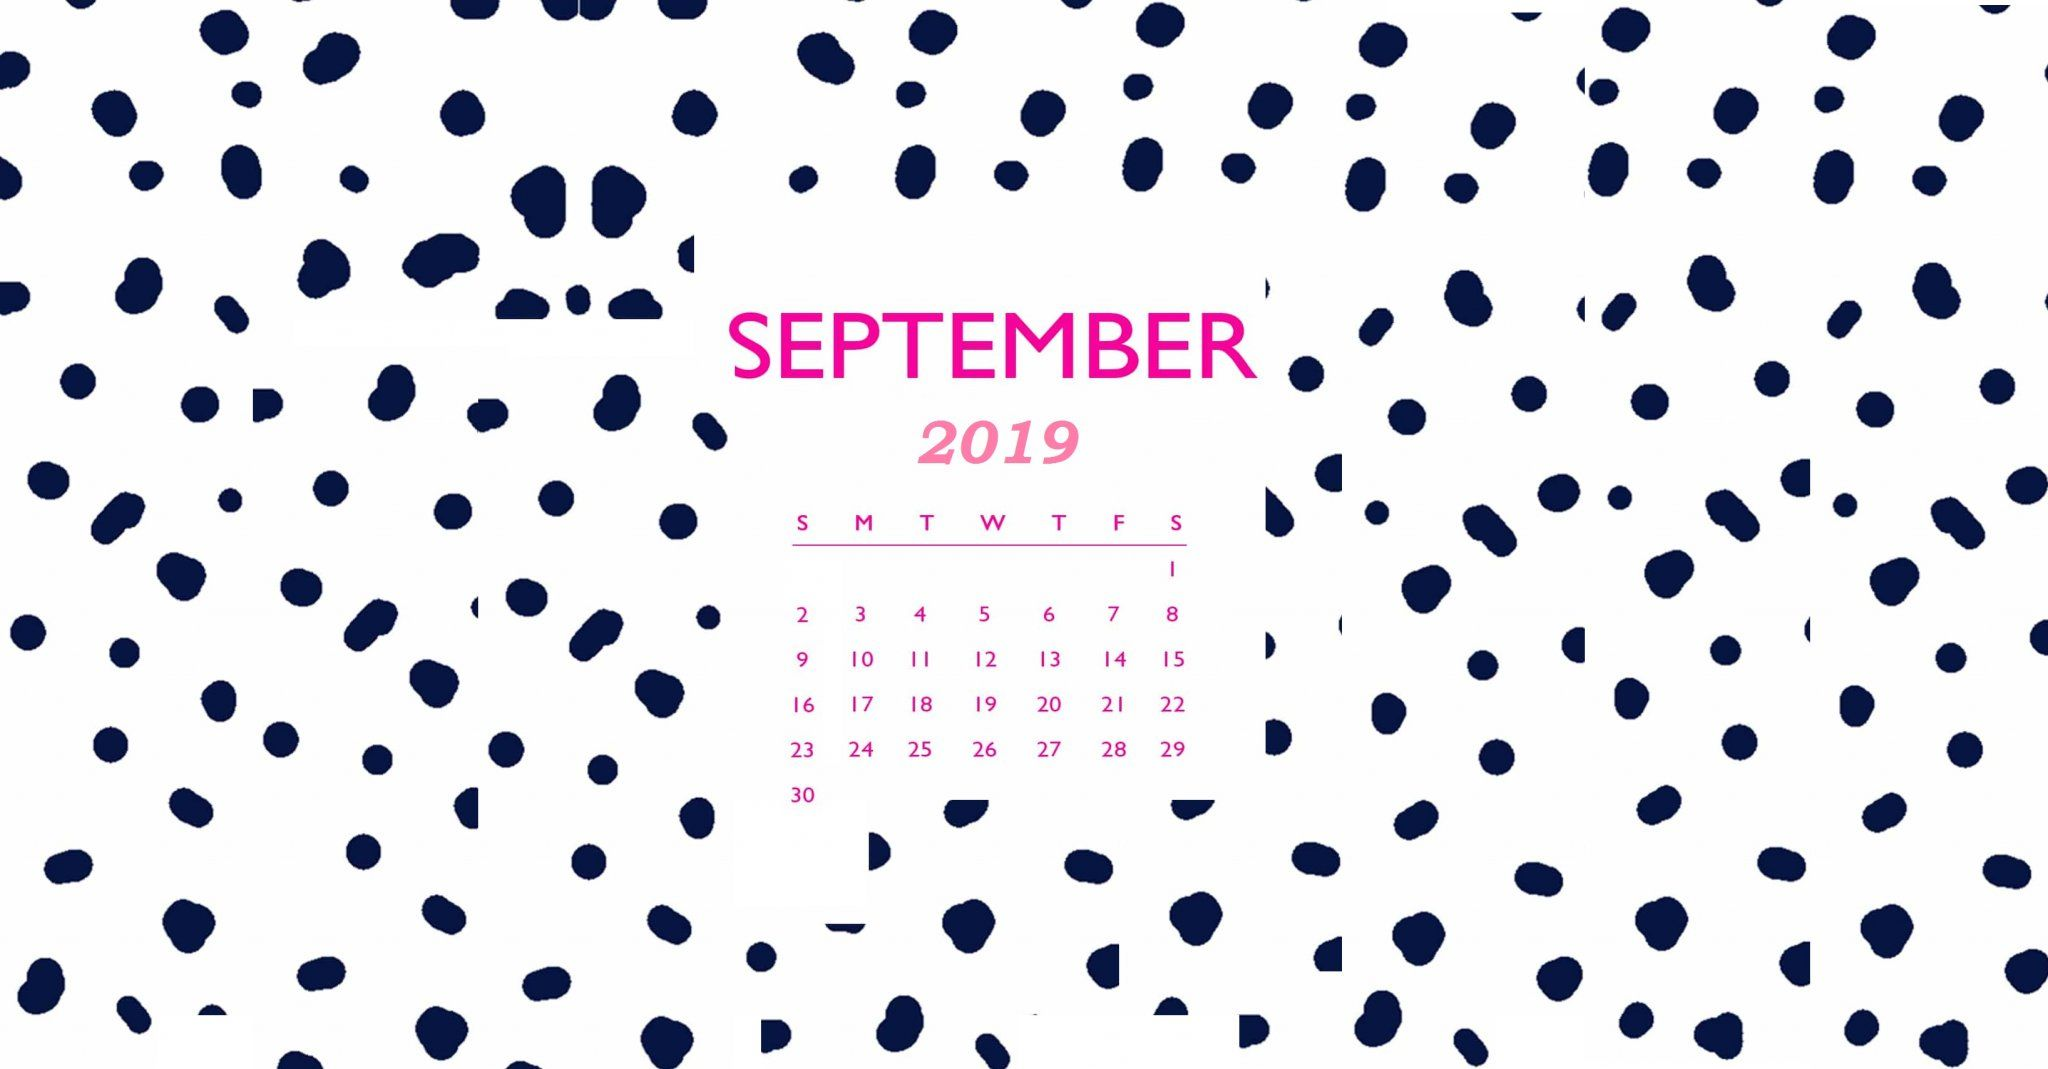 September 2019 Calendar Desktop Wallpaper